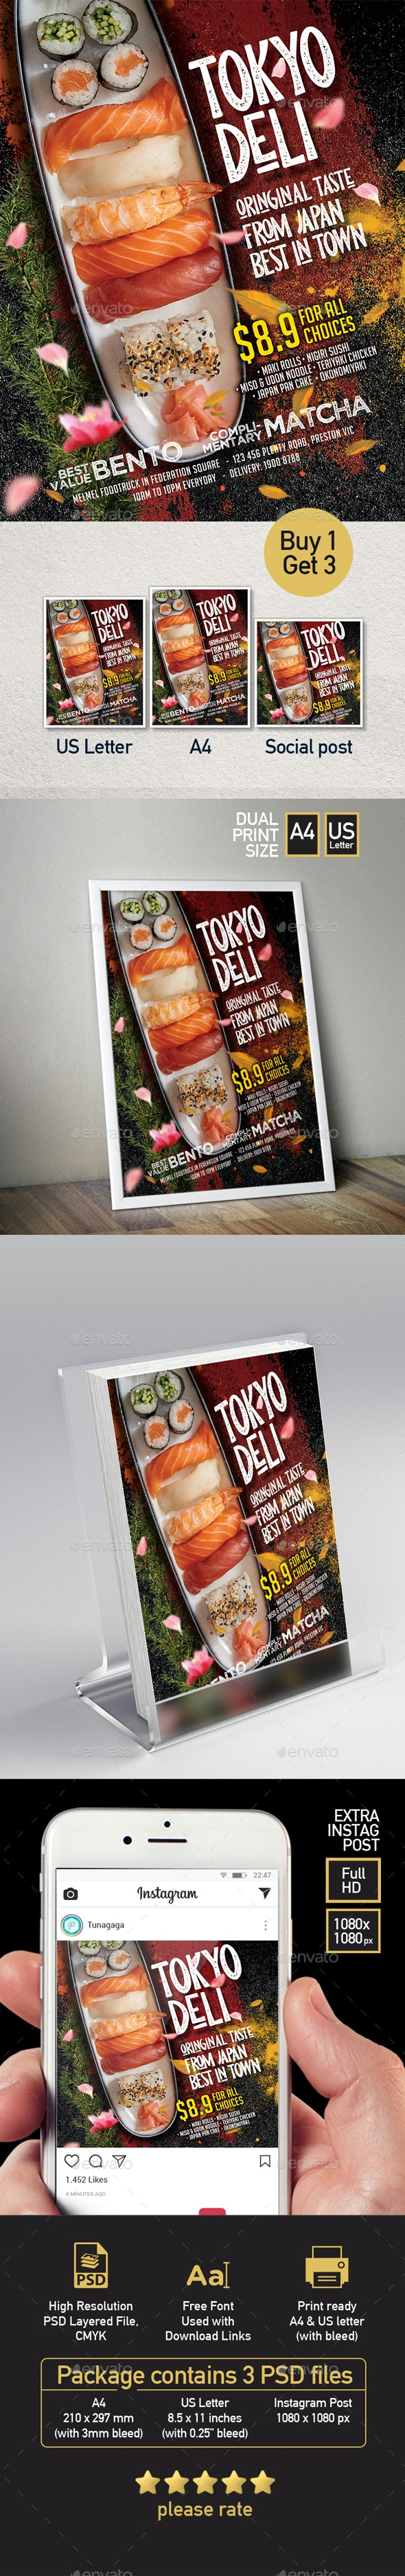 Japanese Sushi Sashimi Restaurant Menu Flyer  - Set of 3 Templates - Restaurant Flyers